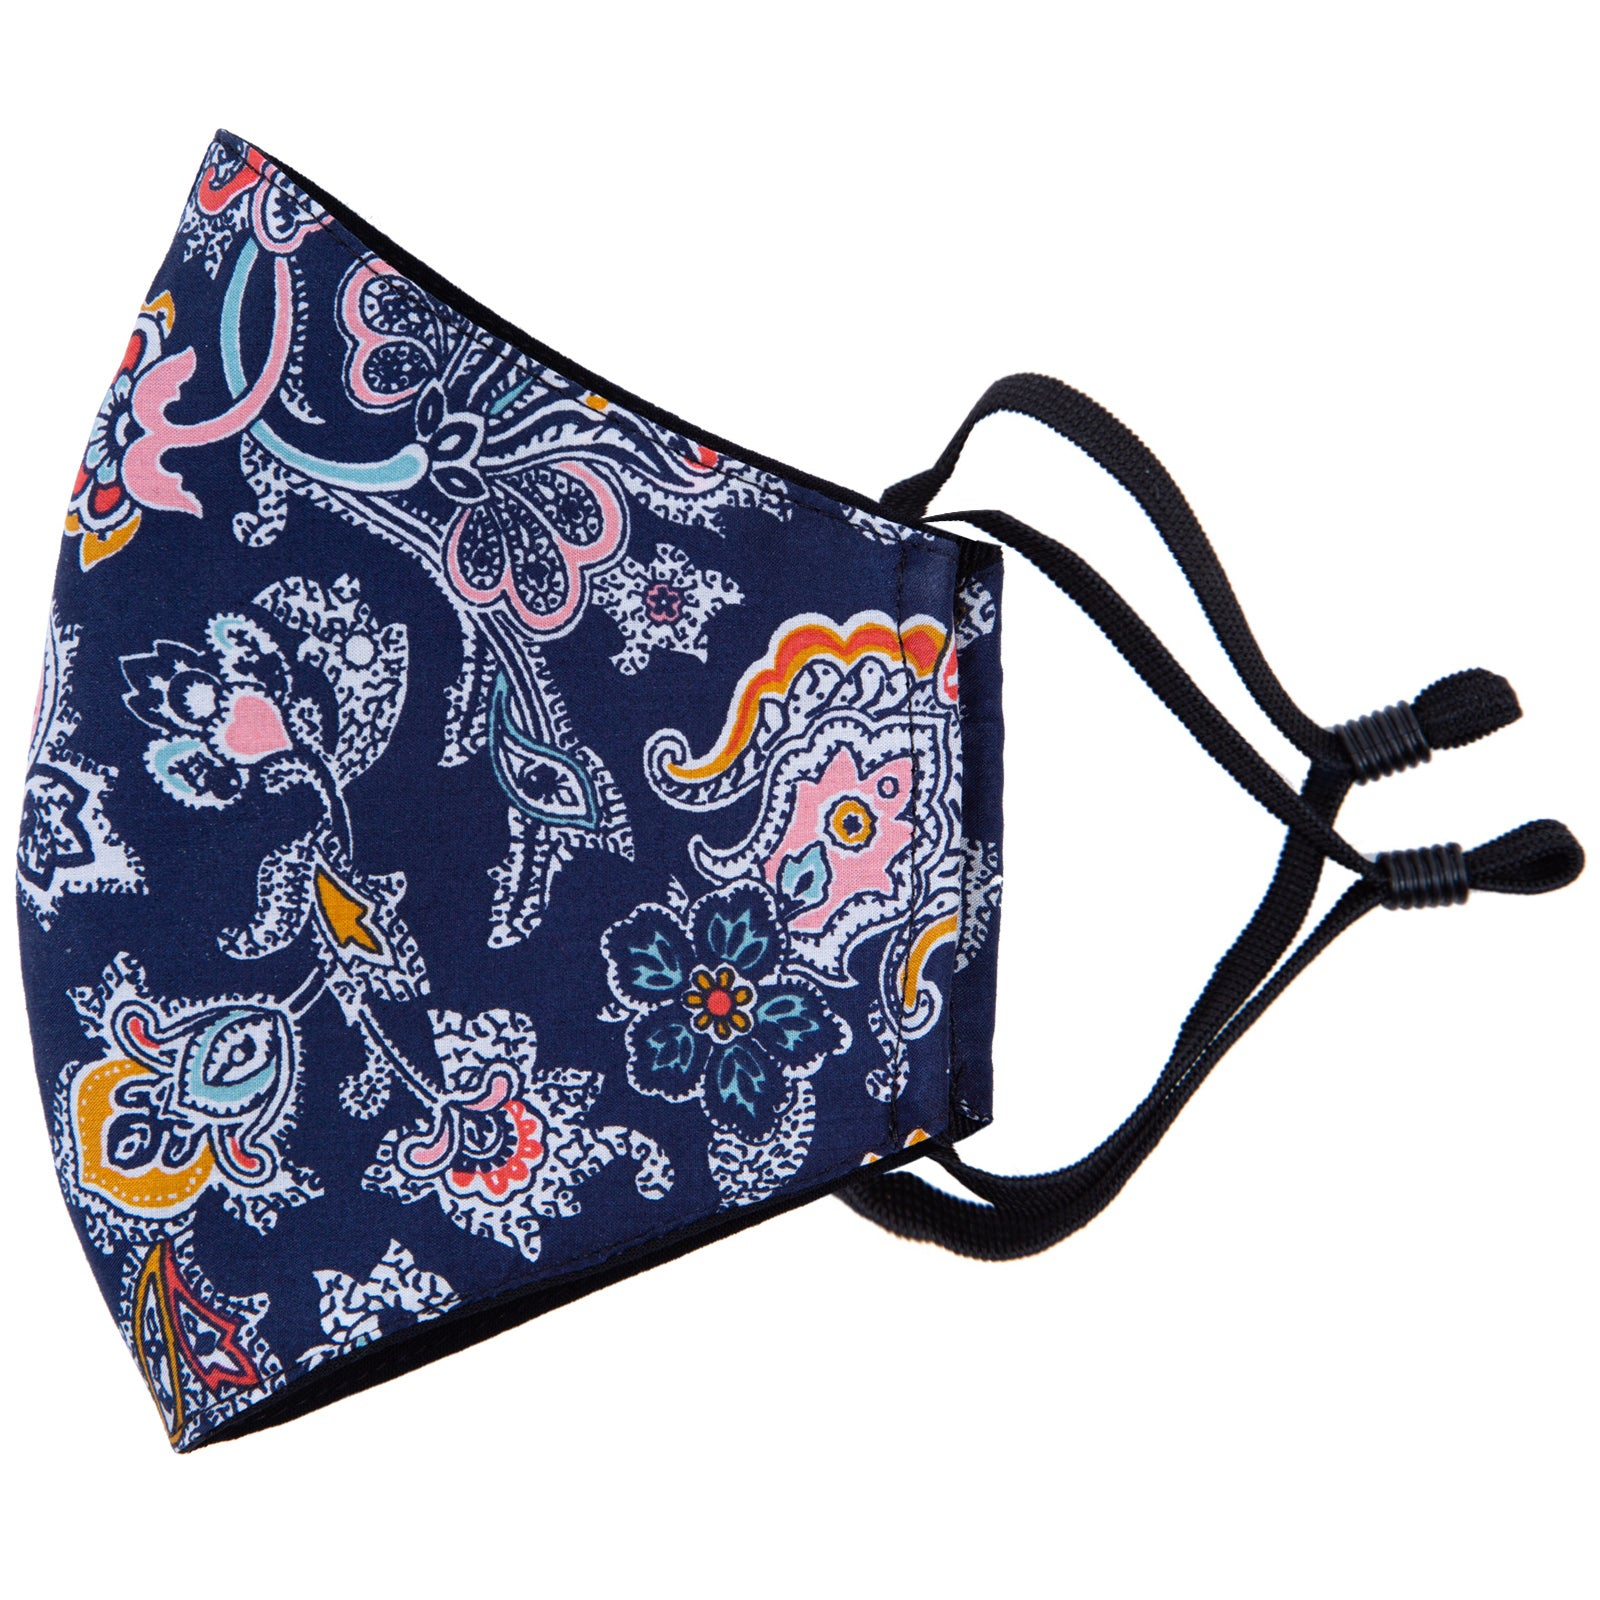 match this paisley face mask to your tie, bow tie, pocket square or braces with Liberty cotton masks, made in NZ by Parisian